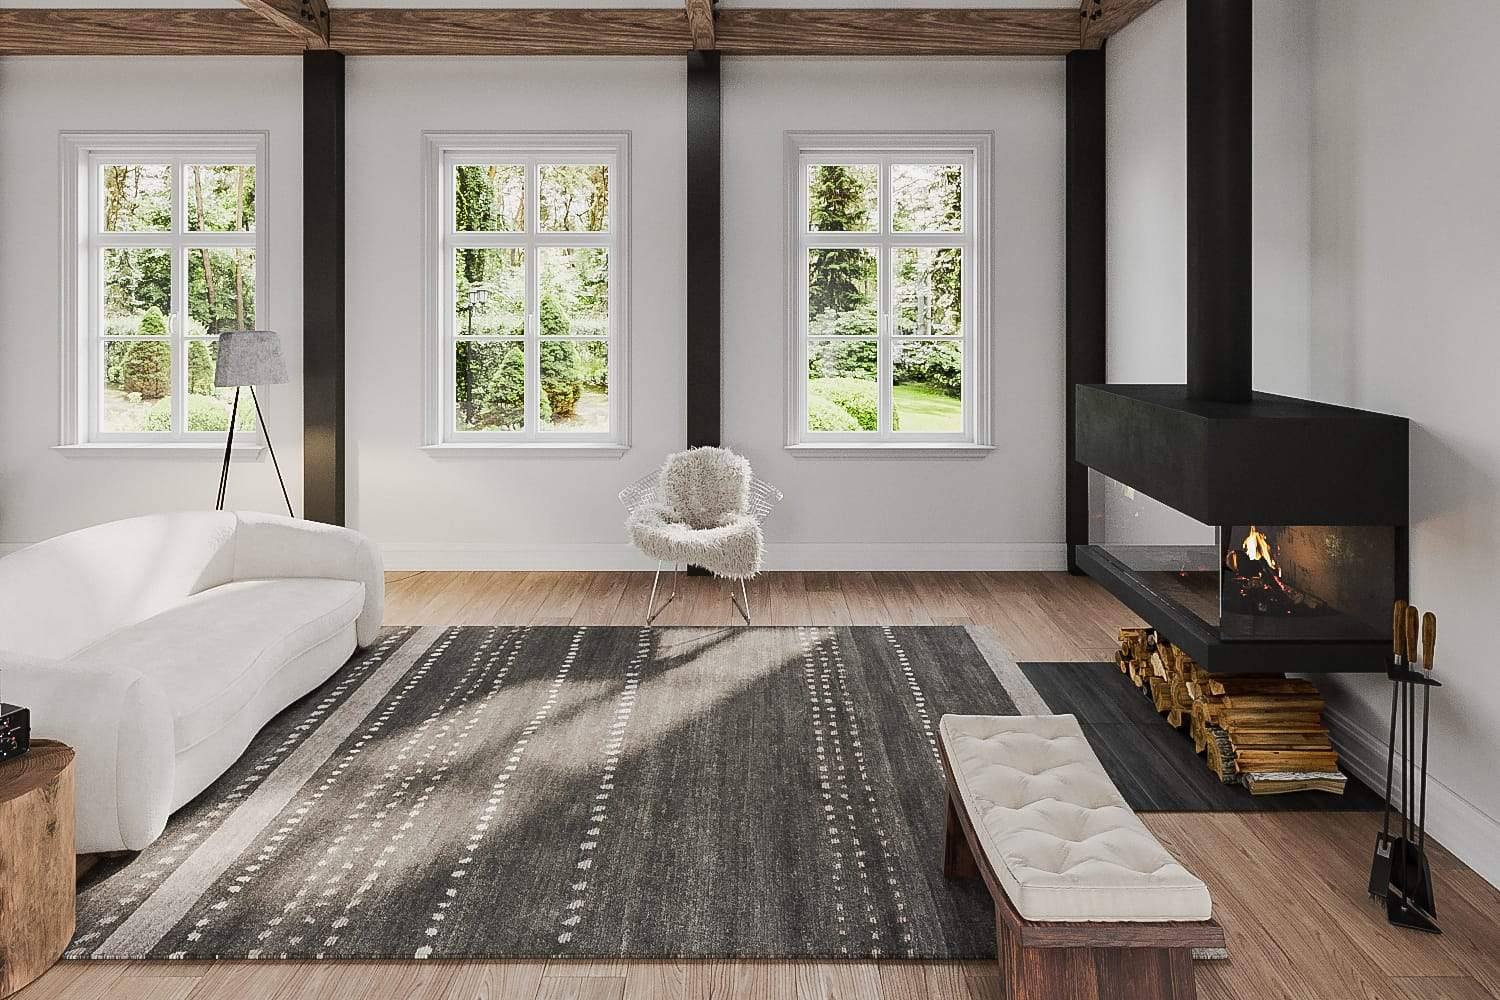 Installation shot of Kaibab II Peppercorn, a hand knotted rug designed by Tufenkian Artisan Carpets. room-image